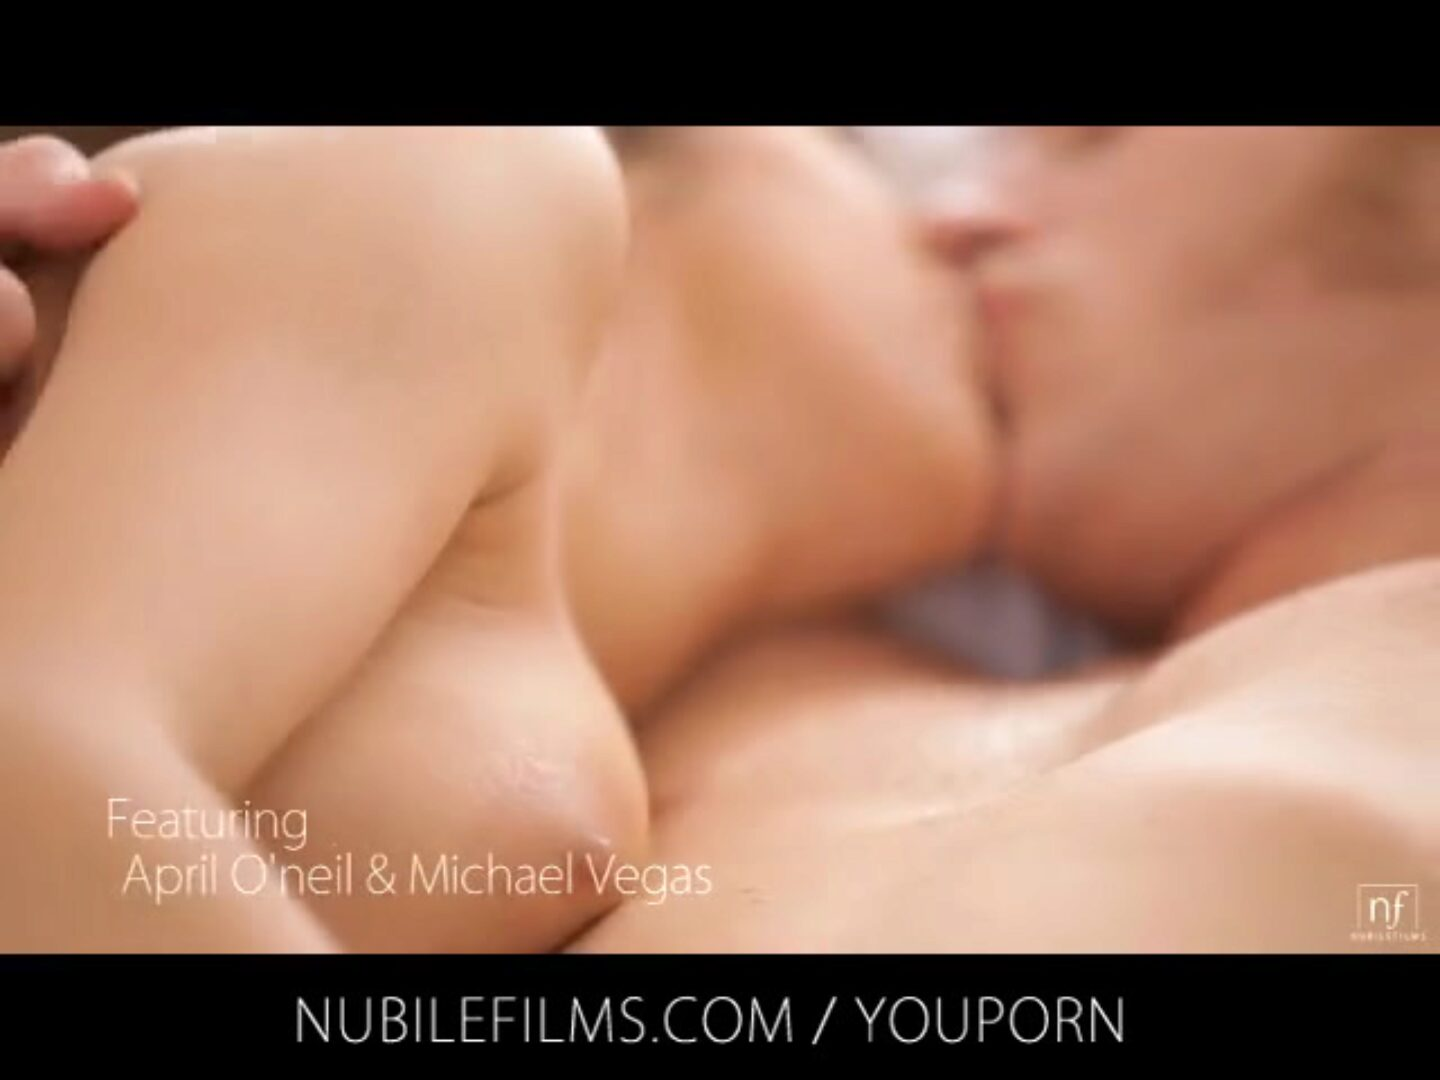 Nubile Films - Memories Of You Brunette cutie April Oneil reminisces over the intense joy and creamy backside that her absent paramour gave in their final softcore tryst